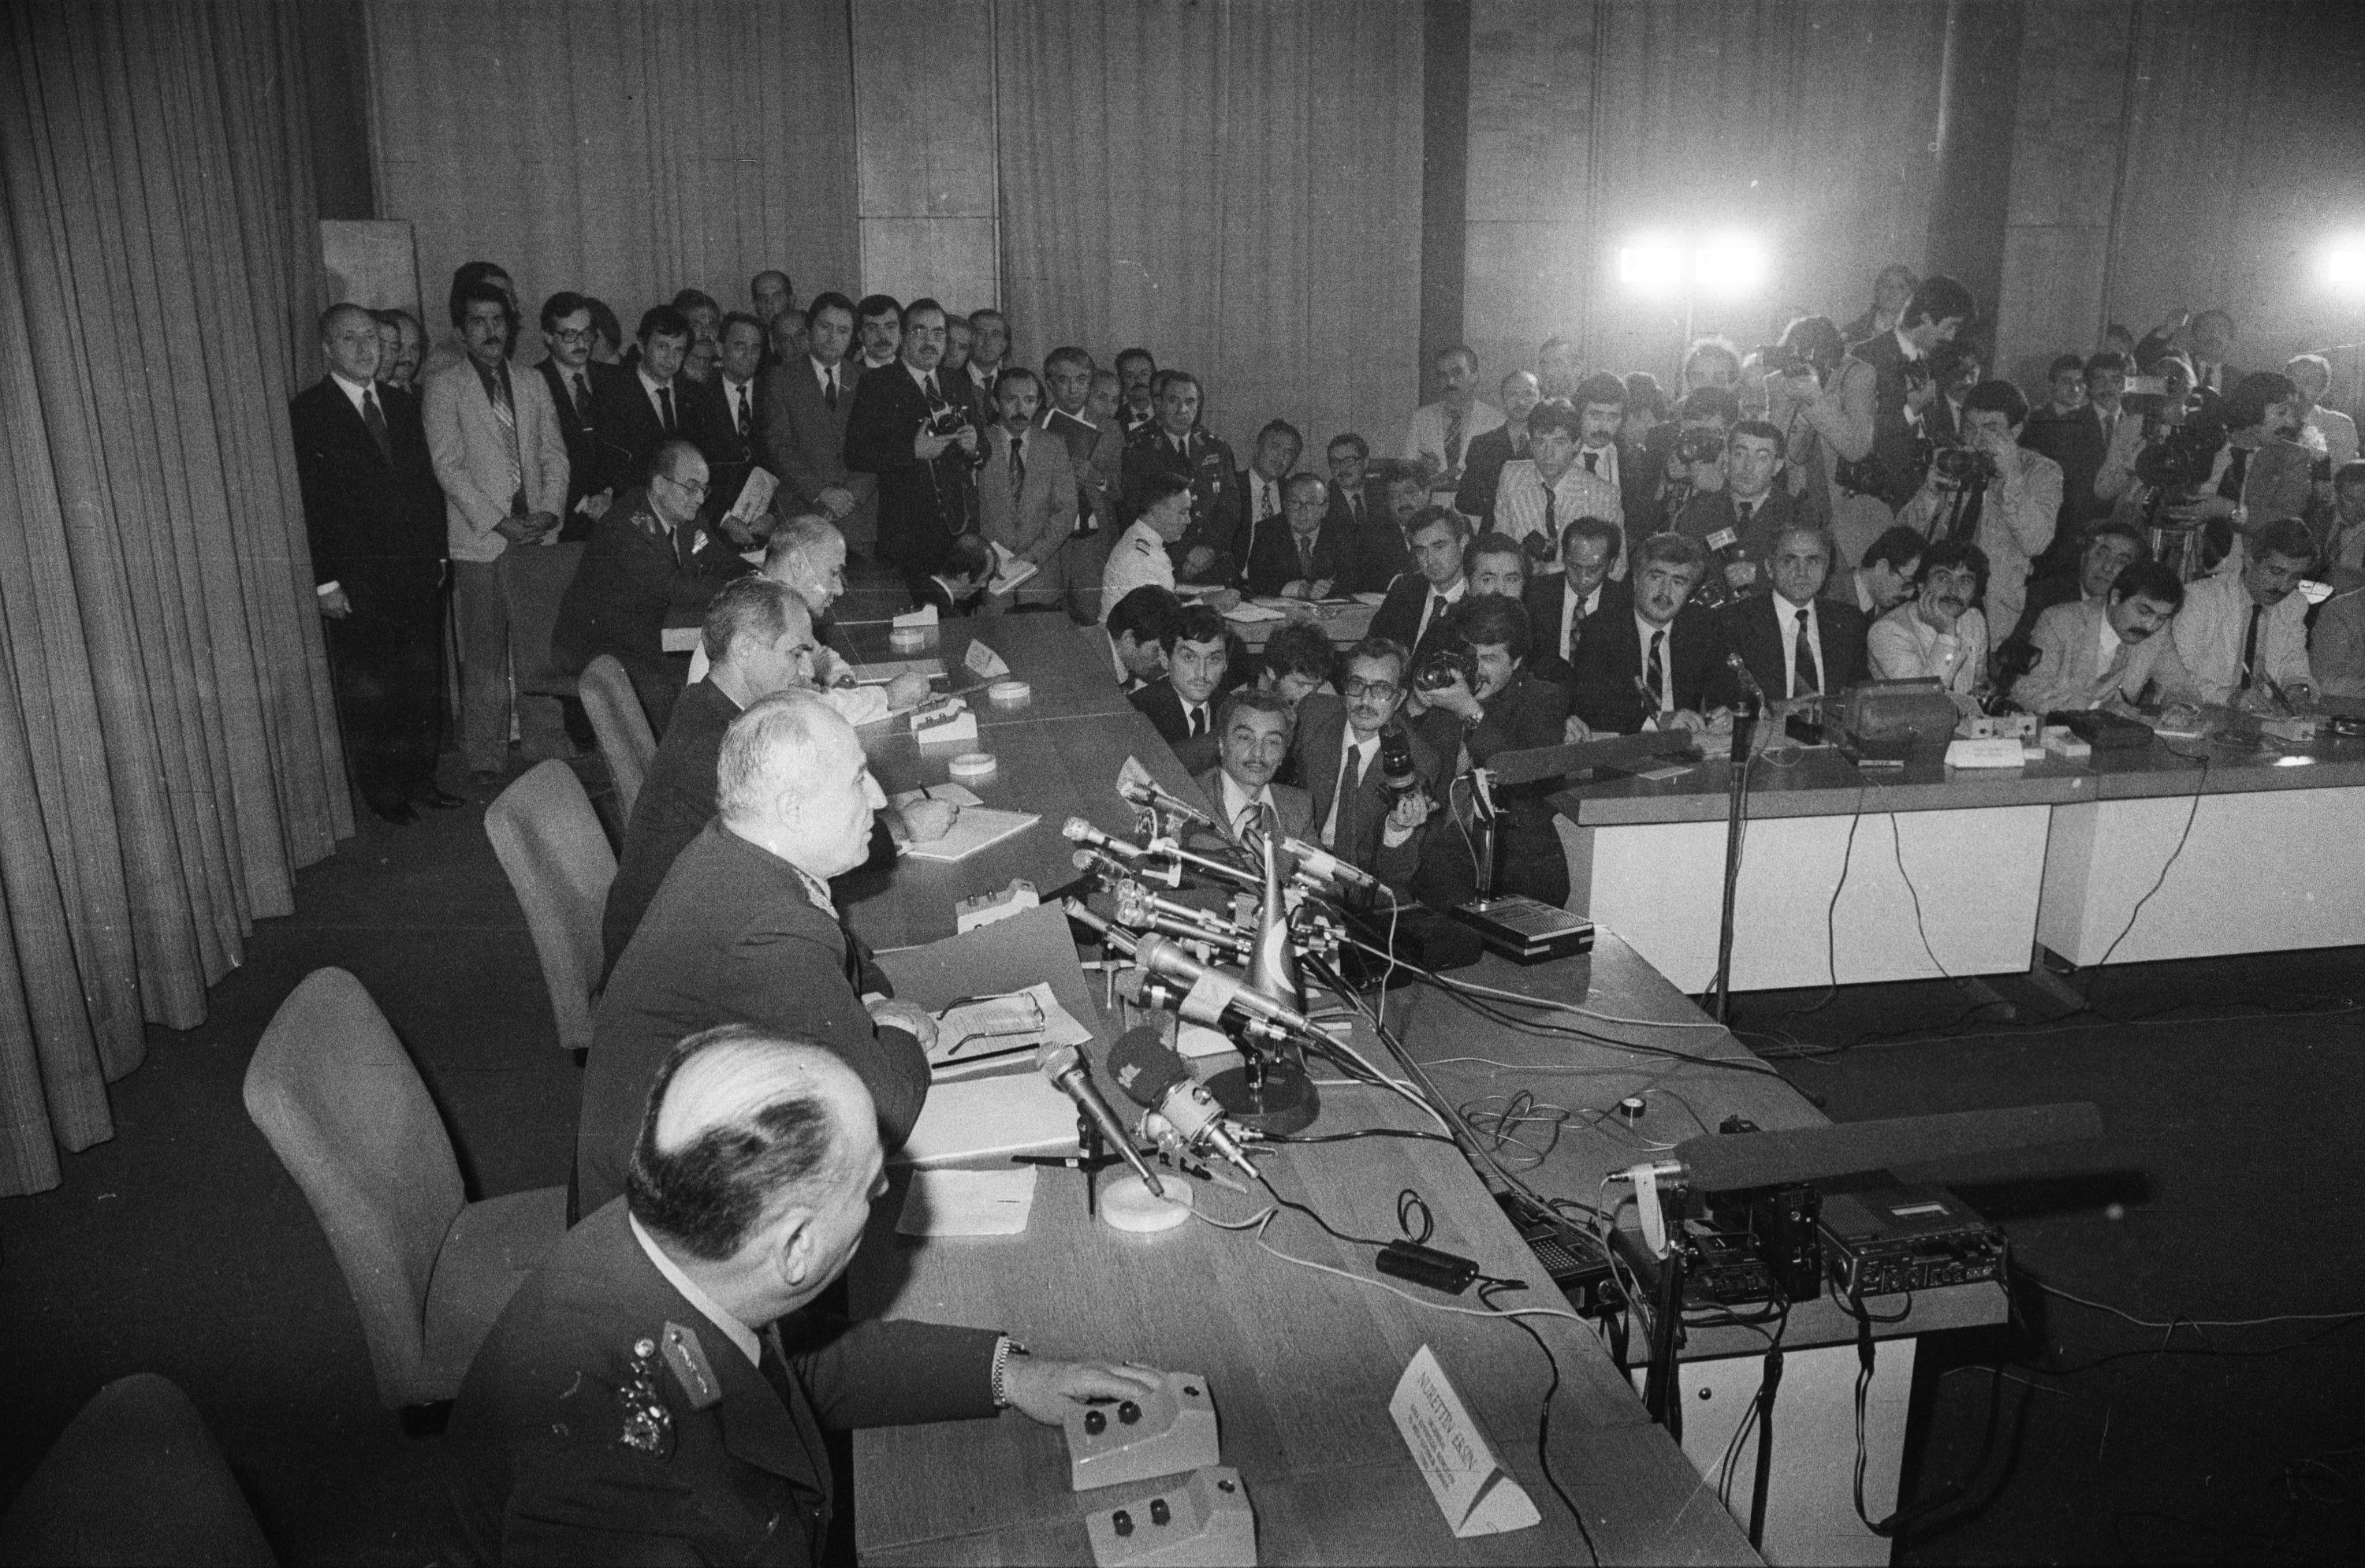 Chairman of the National Security Council (MGK) and Chief of General Staff, Gen. Kenan Evren (C) makes his first statement following the coup to the press, Sept. 12, 1980 at the Grand National Assembly of Turkey, alongside Commander of the Naval Forces Admiral Nejat Tümer, Commander of the Air Force Gen. Tahsin Şahinkaya, Land Forces Commander Gen. Nurettin Ersin and Gendarmerie General Commander Sedat Celasun were also present in the statement in the Turkish Grand National Assembly (from right to left) (AA File Photo)